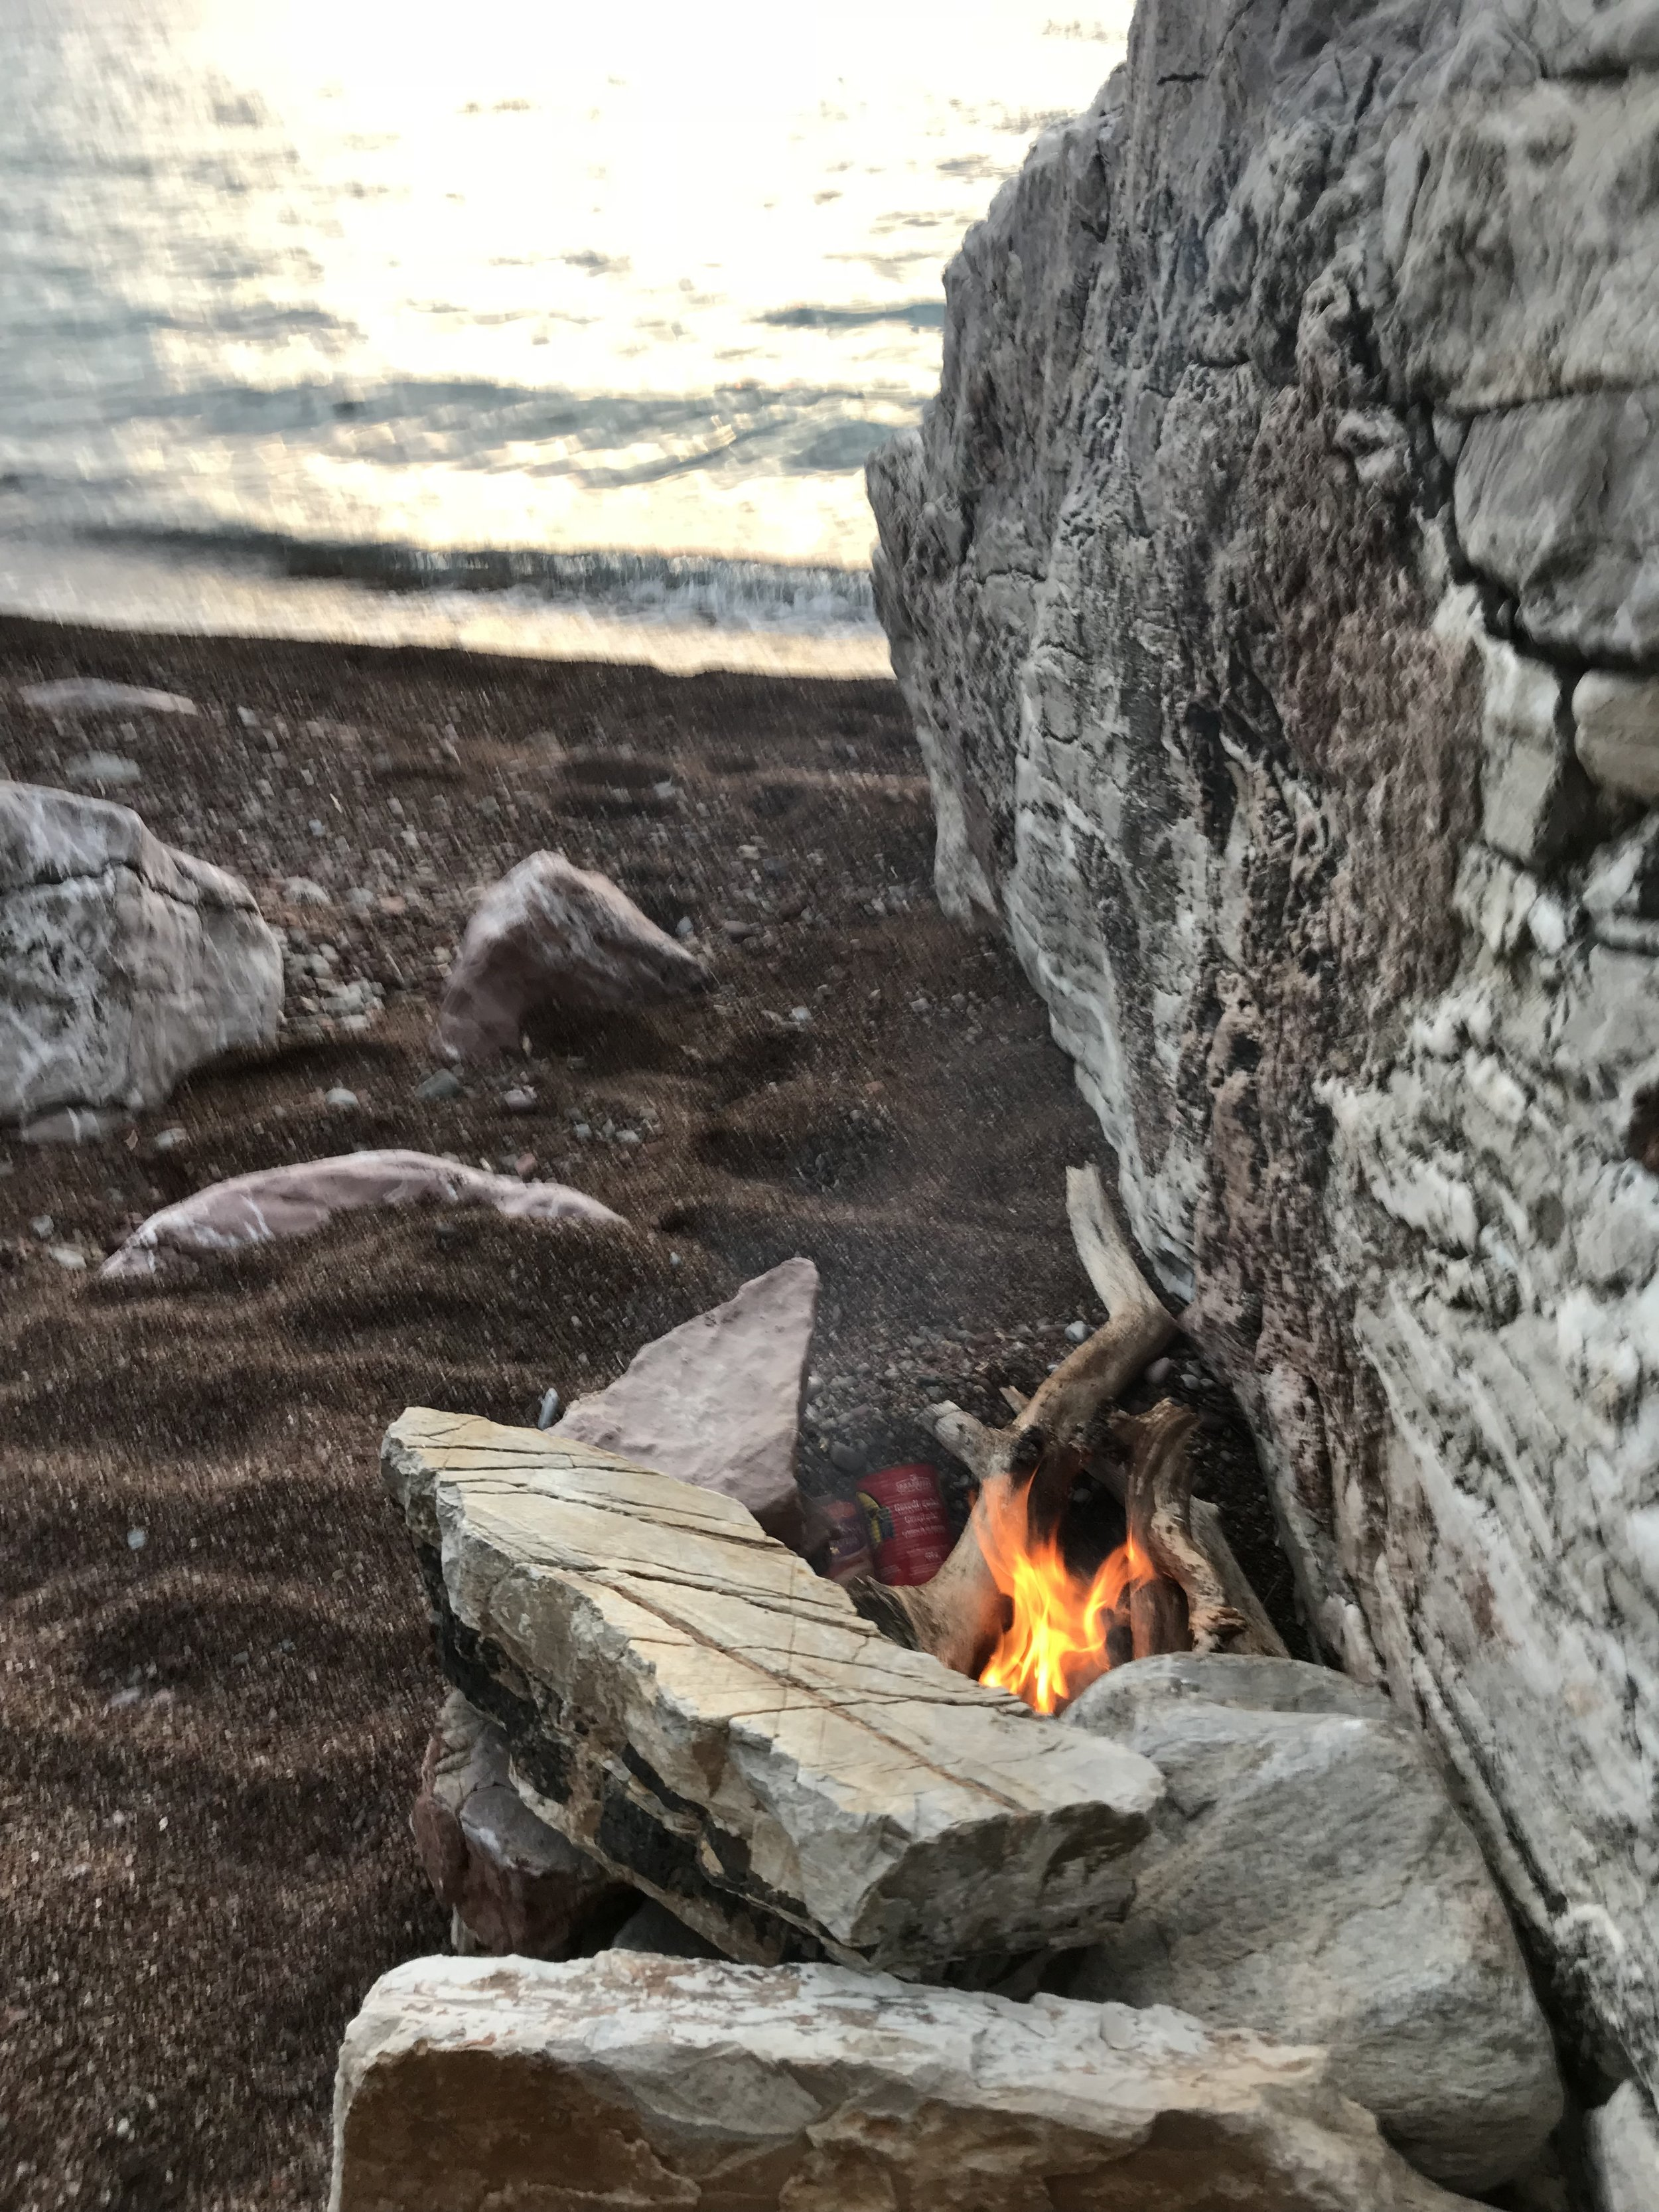 Great day paddling. We ended up close to a place called Canj. Parked the kayaks at an isolated beach, made a fire, warmed up tin cans of chili and goulash, and had a great meal and a gorgeous sunset.